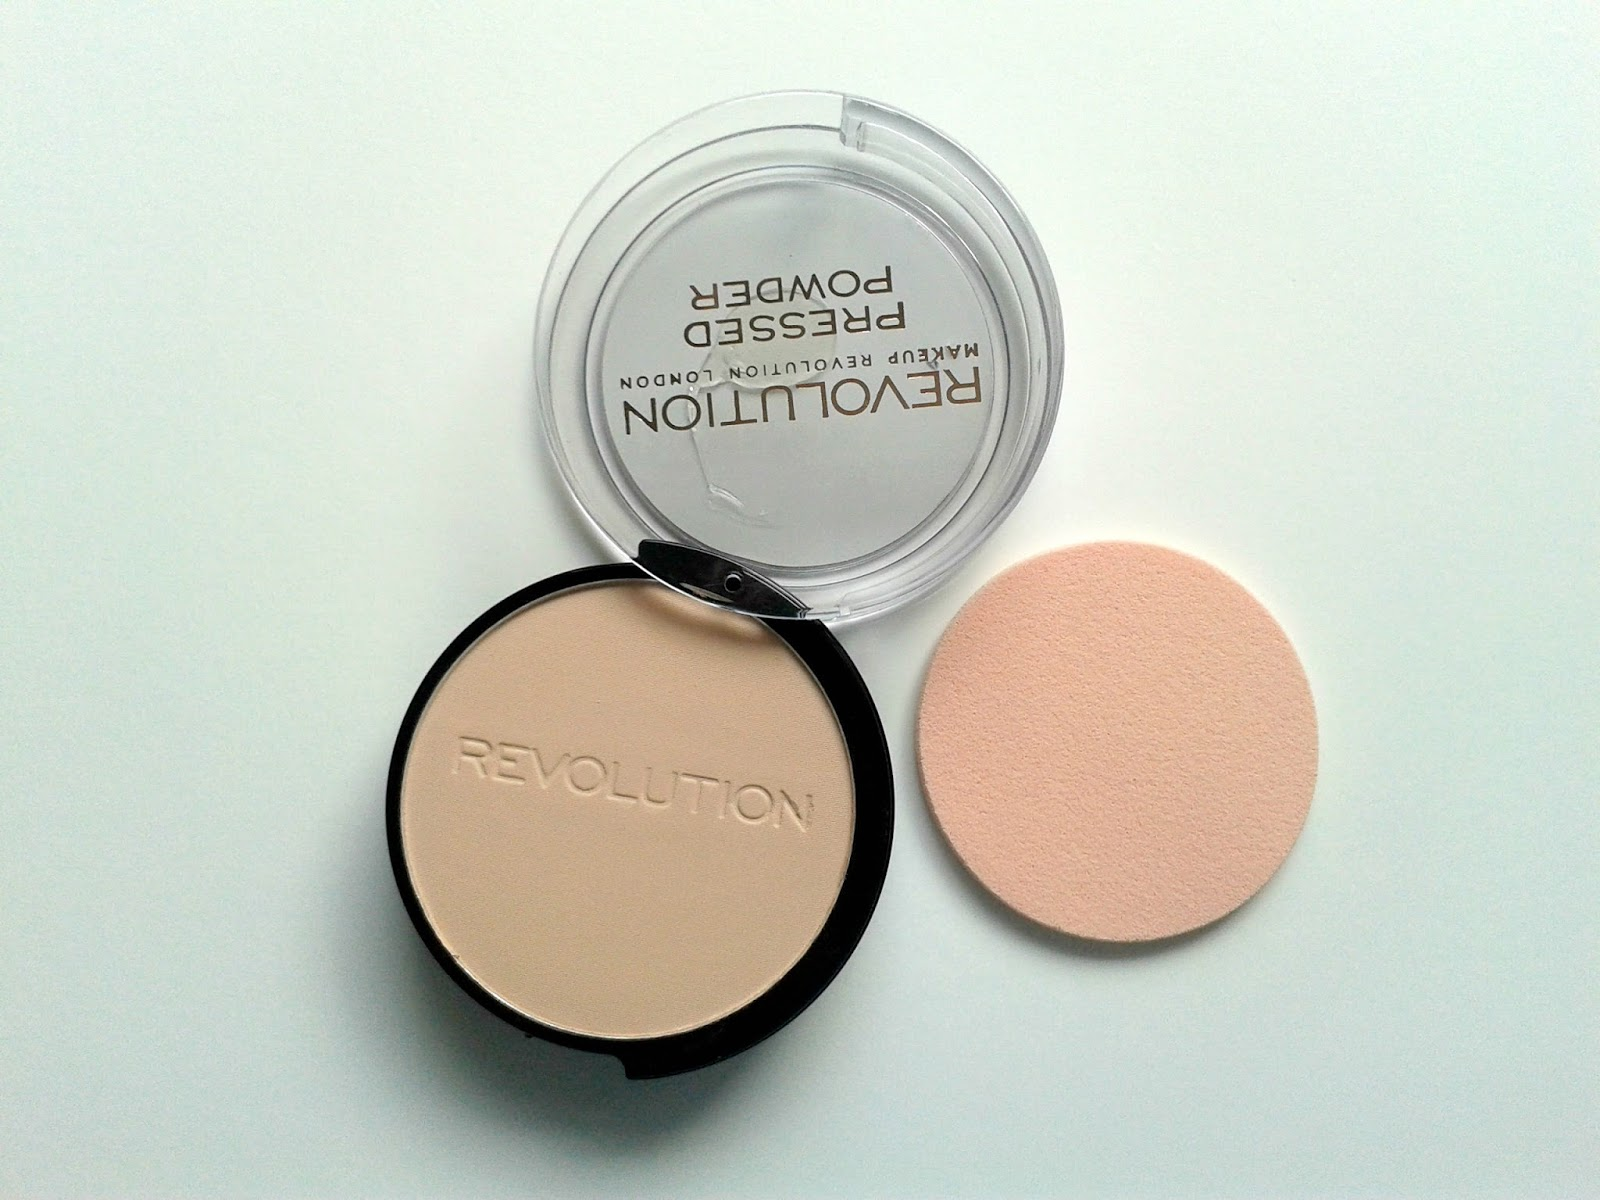 Makeup Revolution Pressed Powder in Porcelain Beauty Review